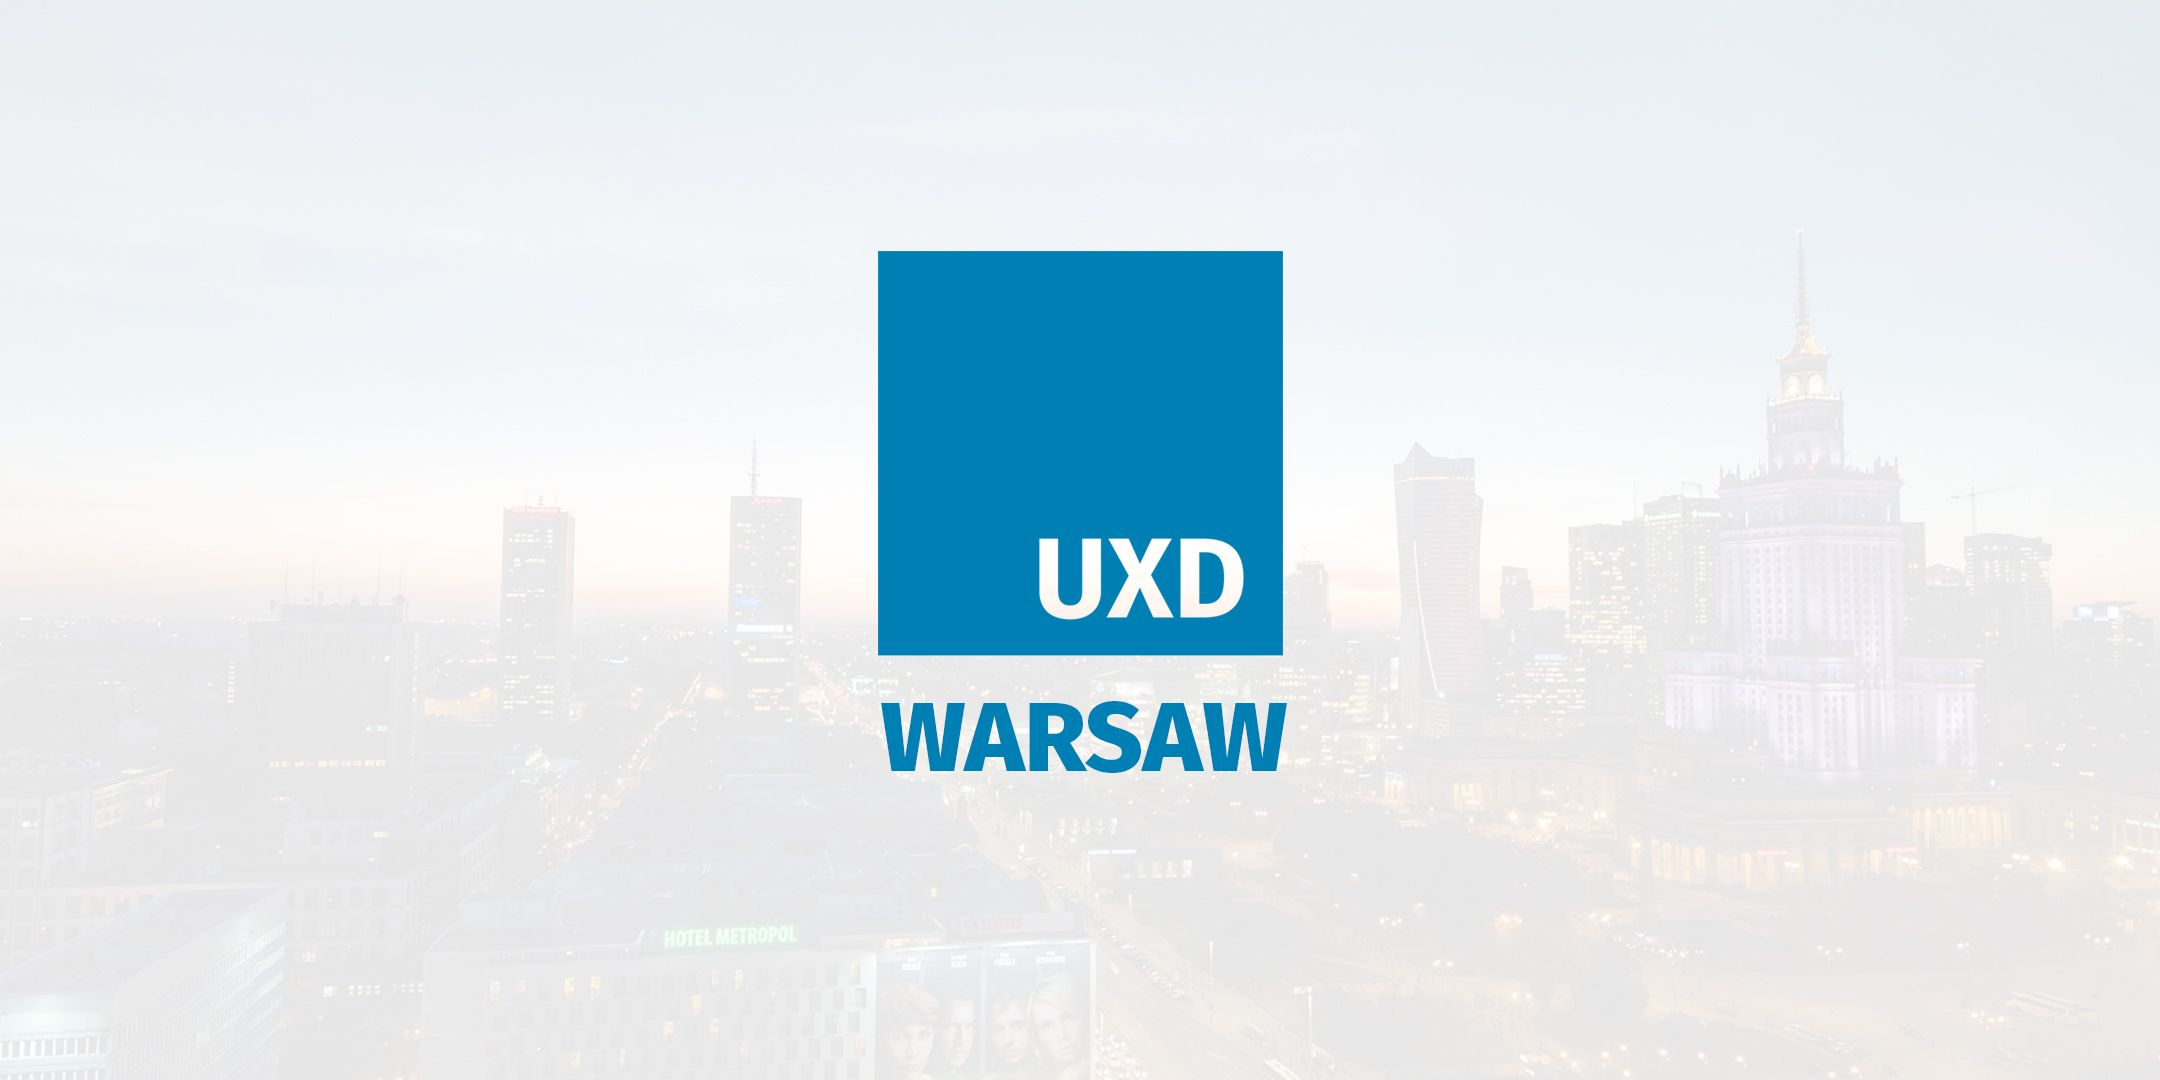 Warsaw User Experience Designers